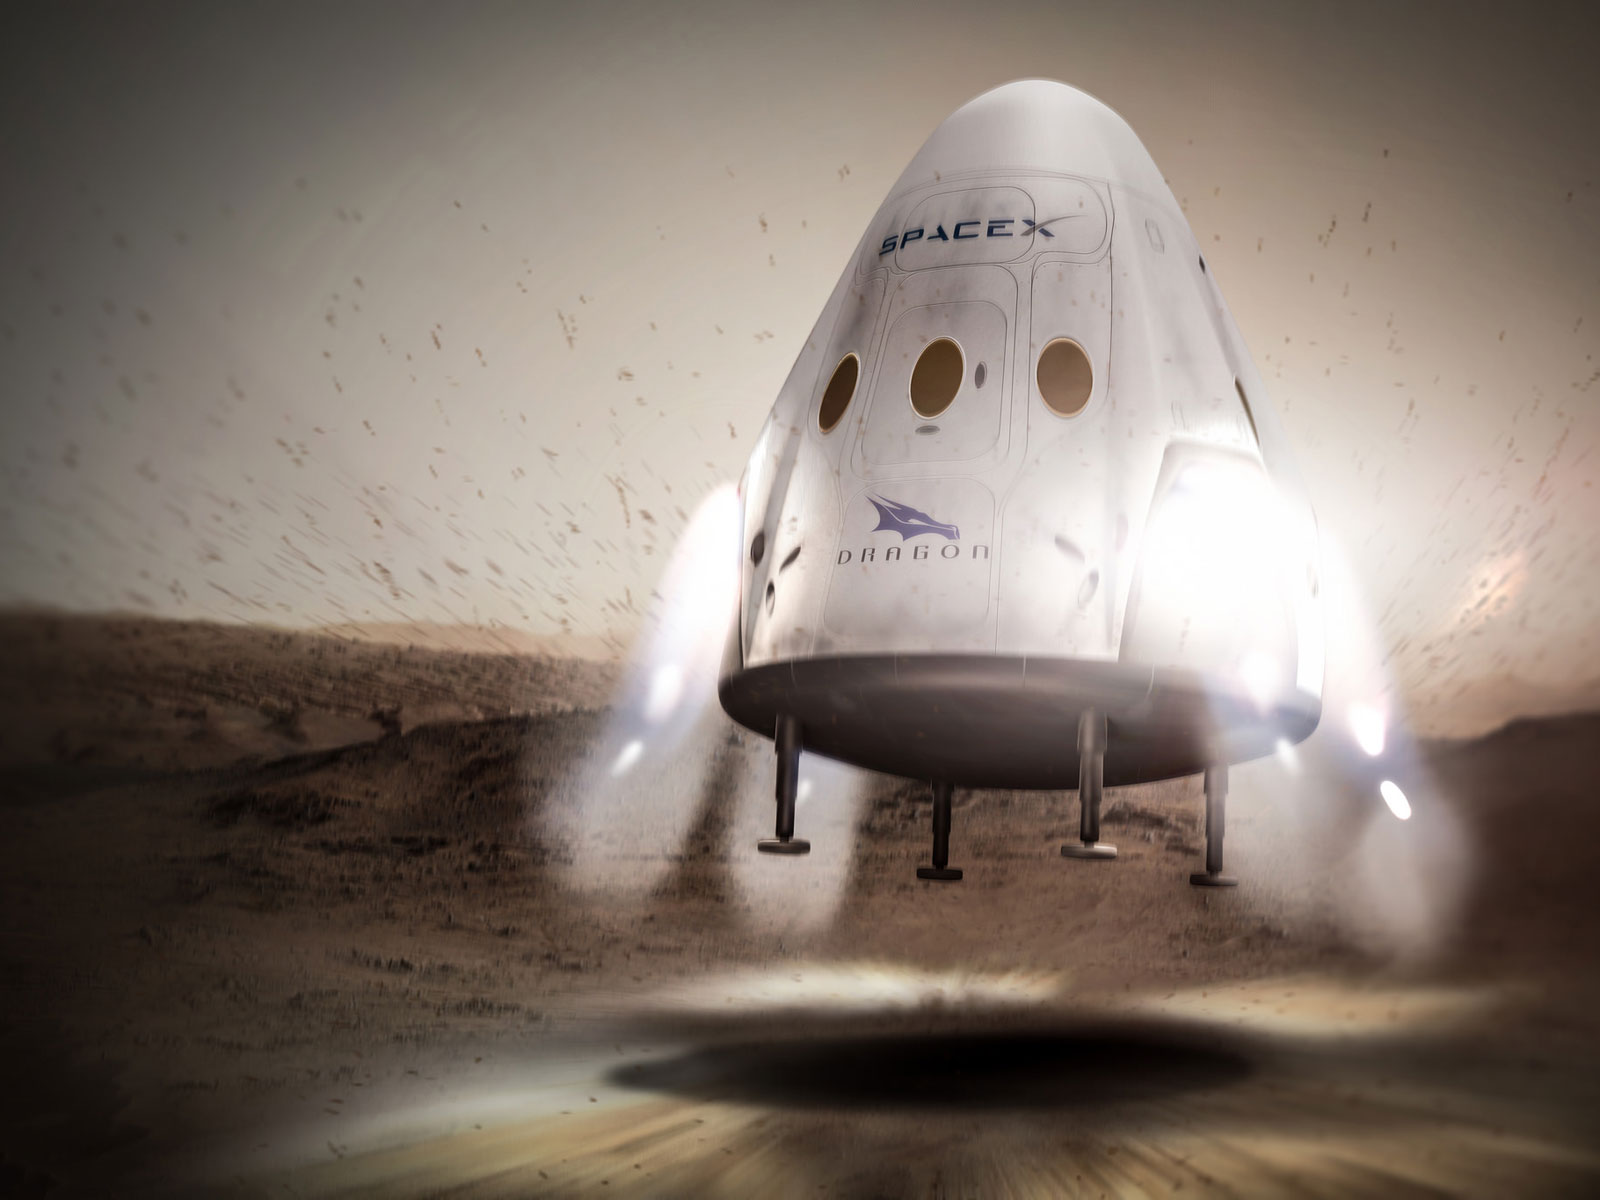 SpaceX's Dragon Landing on Mars | Space Wallpaper